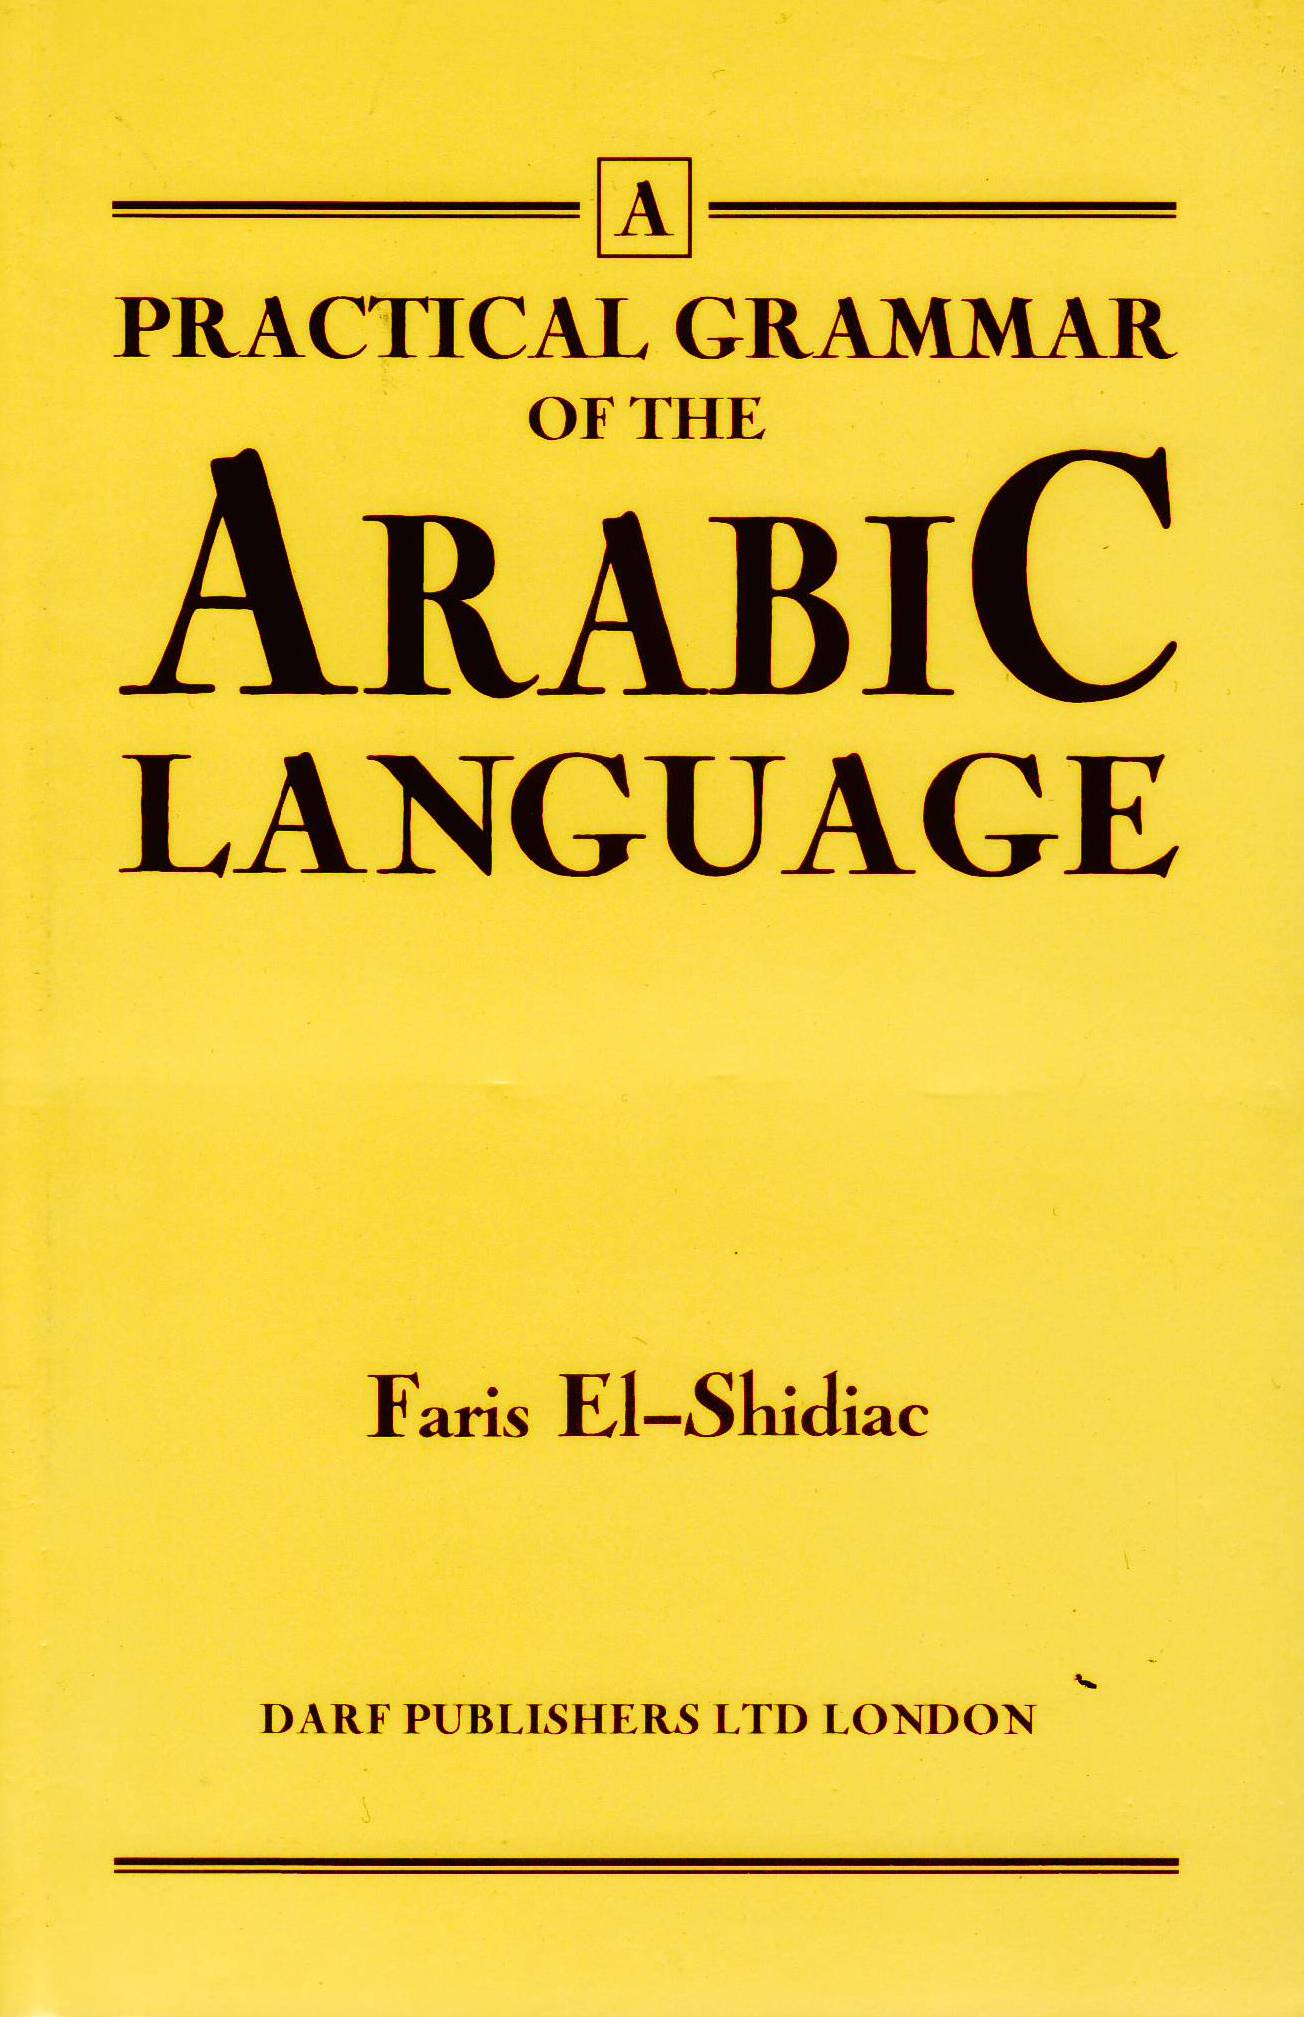 Practical Grammar of the Arabic Language